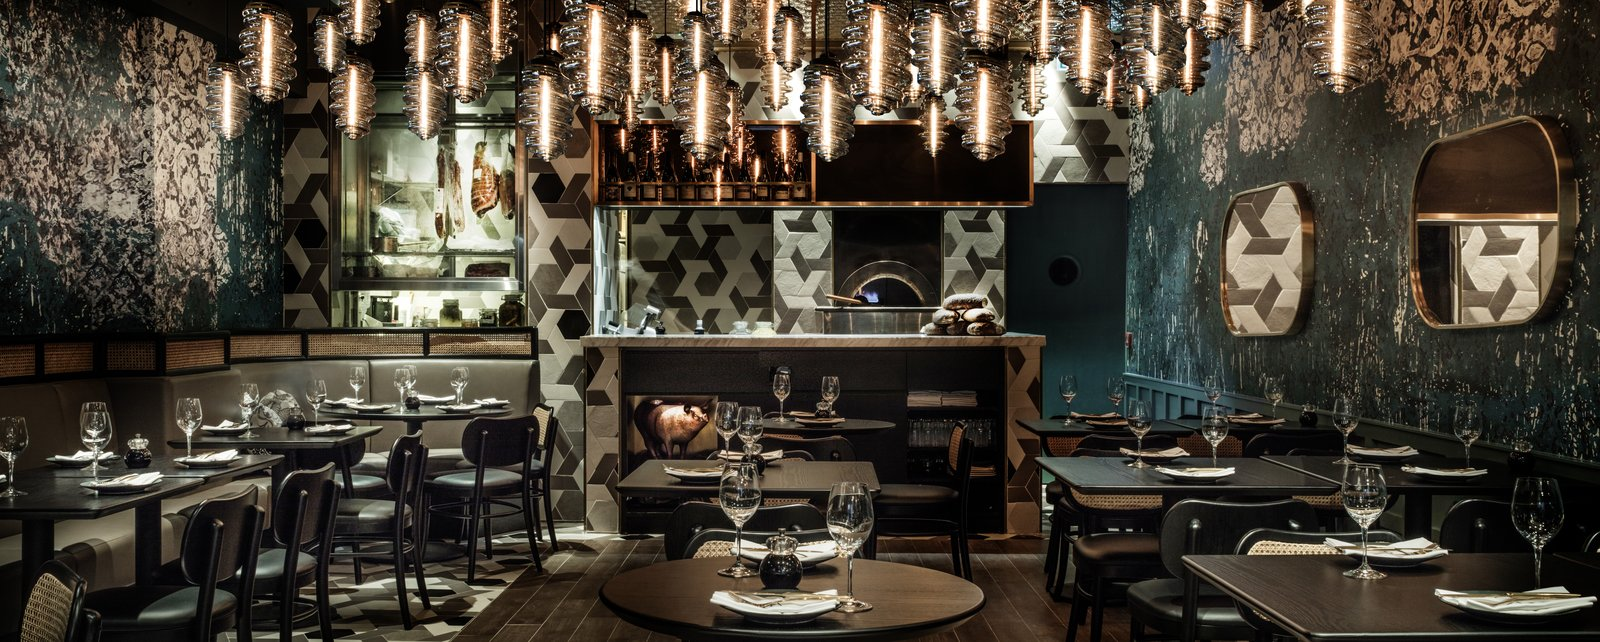 """The entire space is pulled into a central focus by the """"hearth"""", a wood fired oven. Set within the open kitchen, it enables the chef to survey his empire and directly interact with his diners. The space is after all a theatre for the chef and his diners.    Photo 1 of 1 in Emma Maxwell designs  12,000 Francs."""